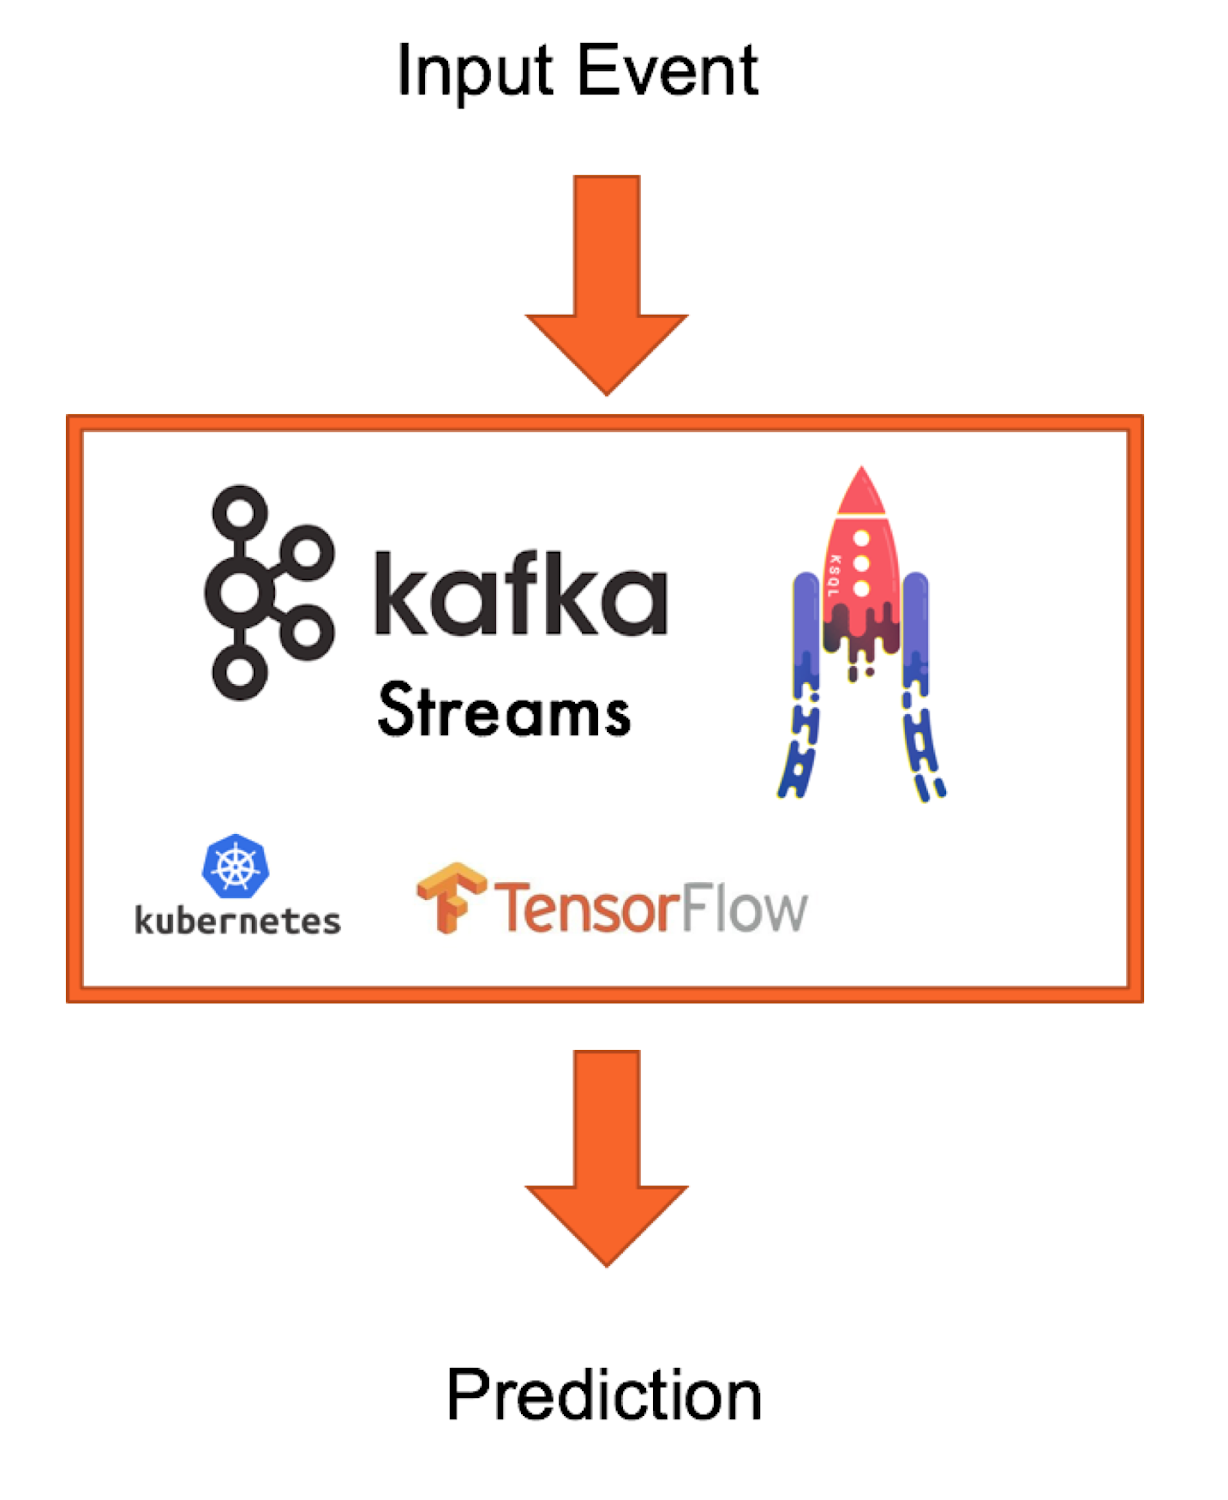 Enabling connected transformation with Apache Kafka and TensorFlow